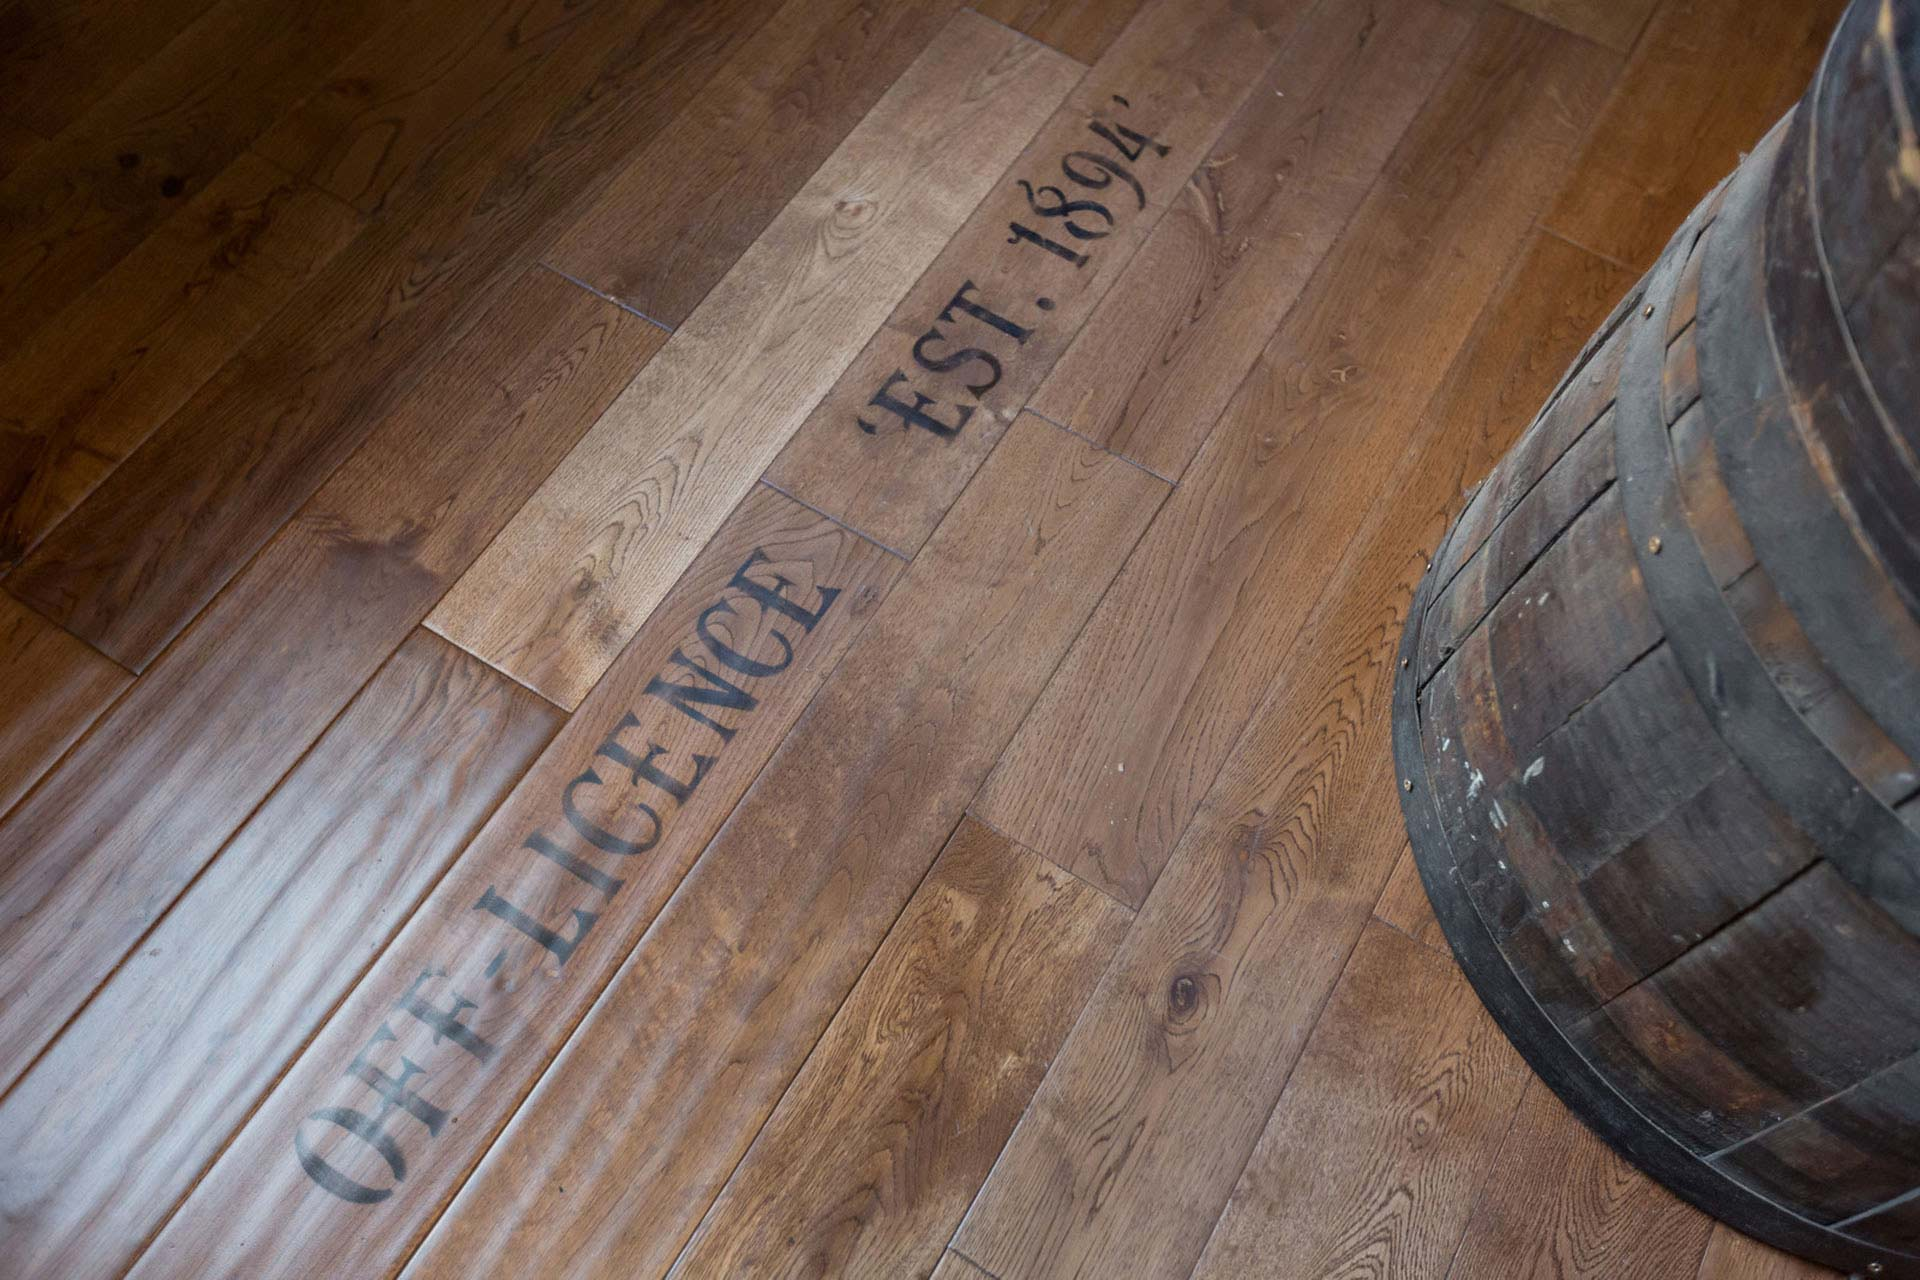 Oak flooring with stencil detail, highlighting interesting facts about the shop